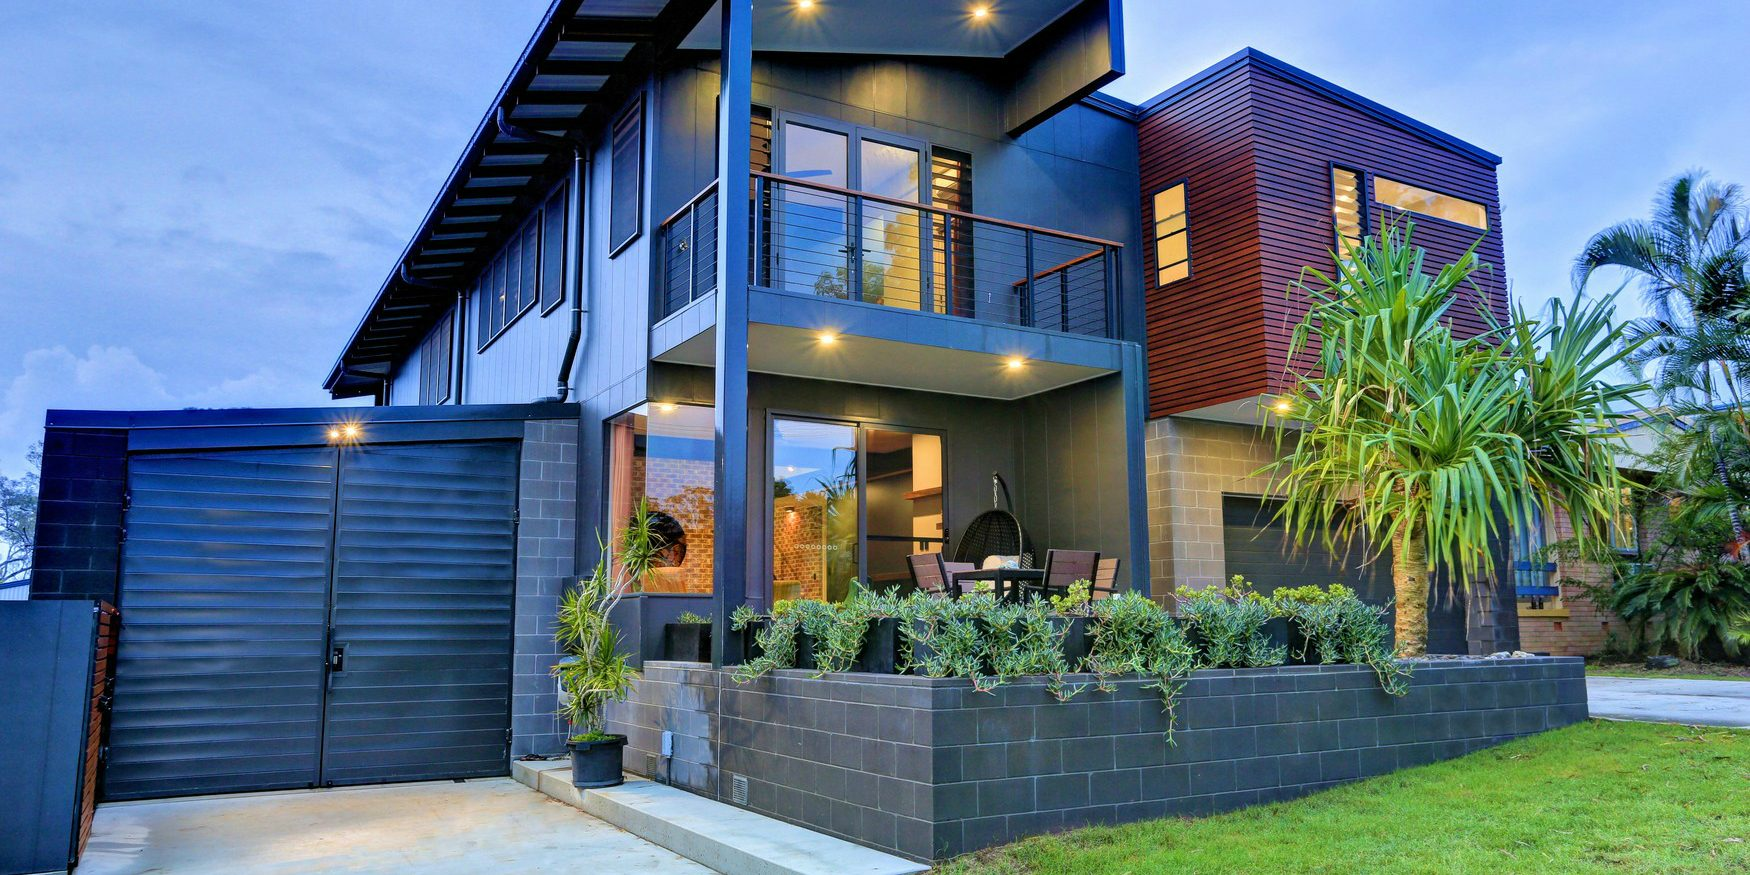 Architectural_block_in_charcoal_as_feature_walls_and_garden_beds_for_a_residential_home